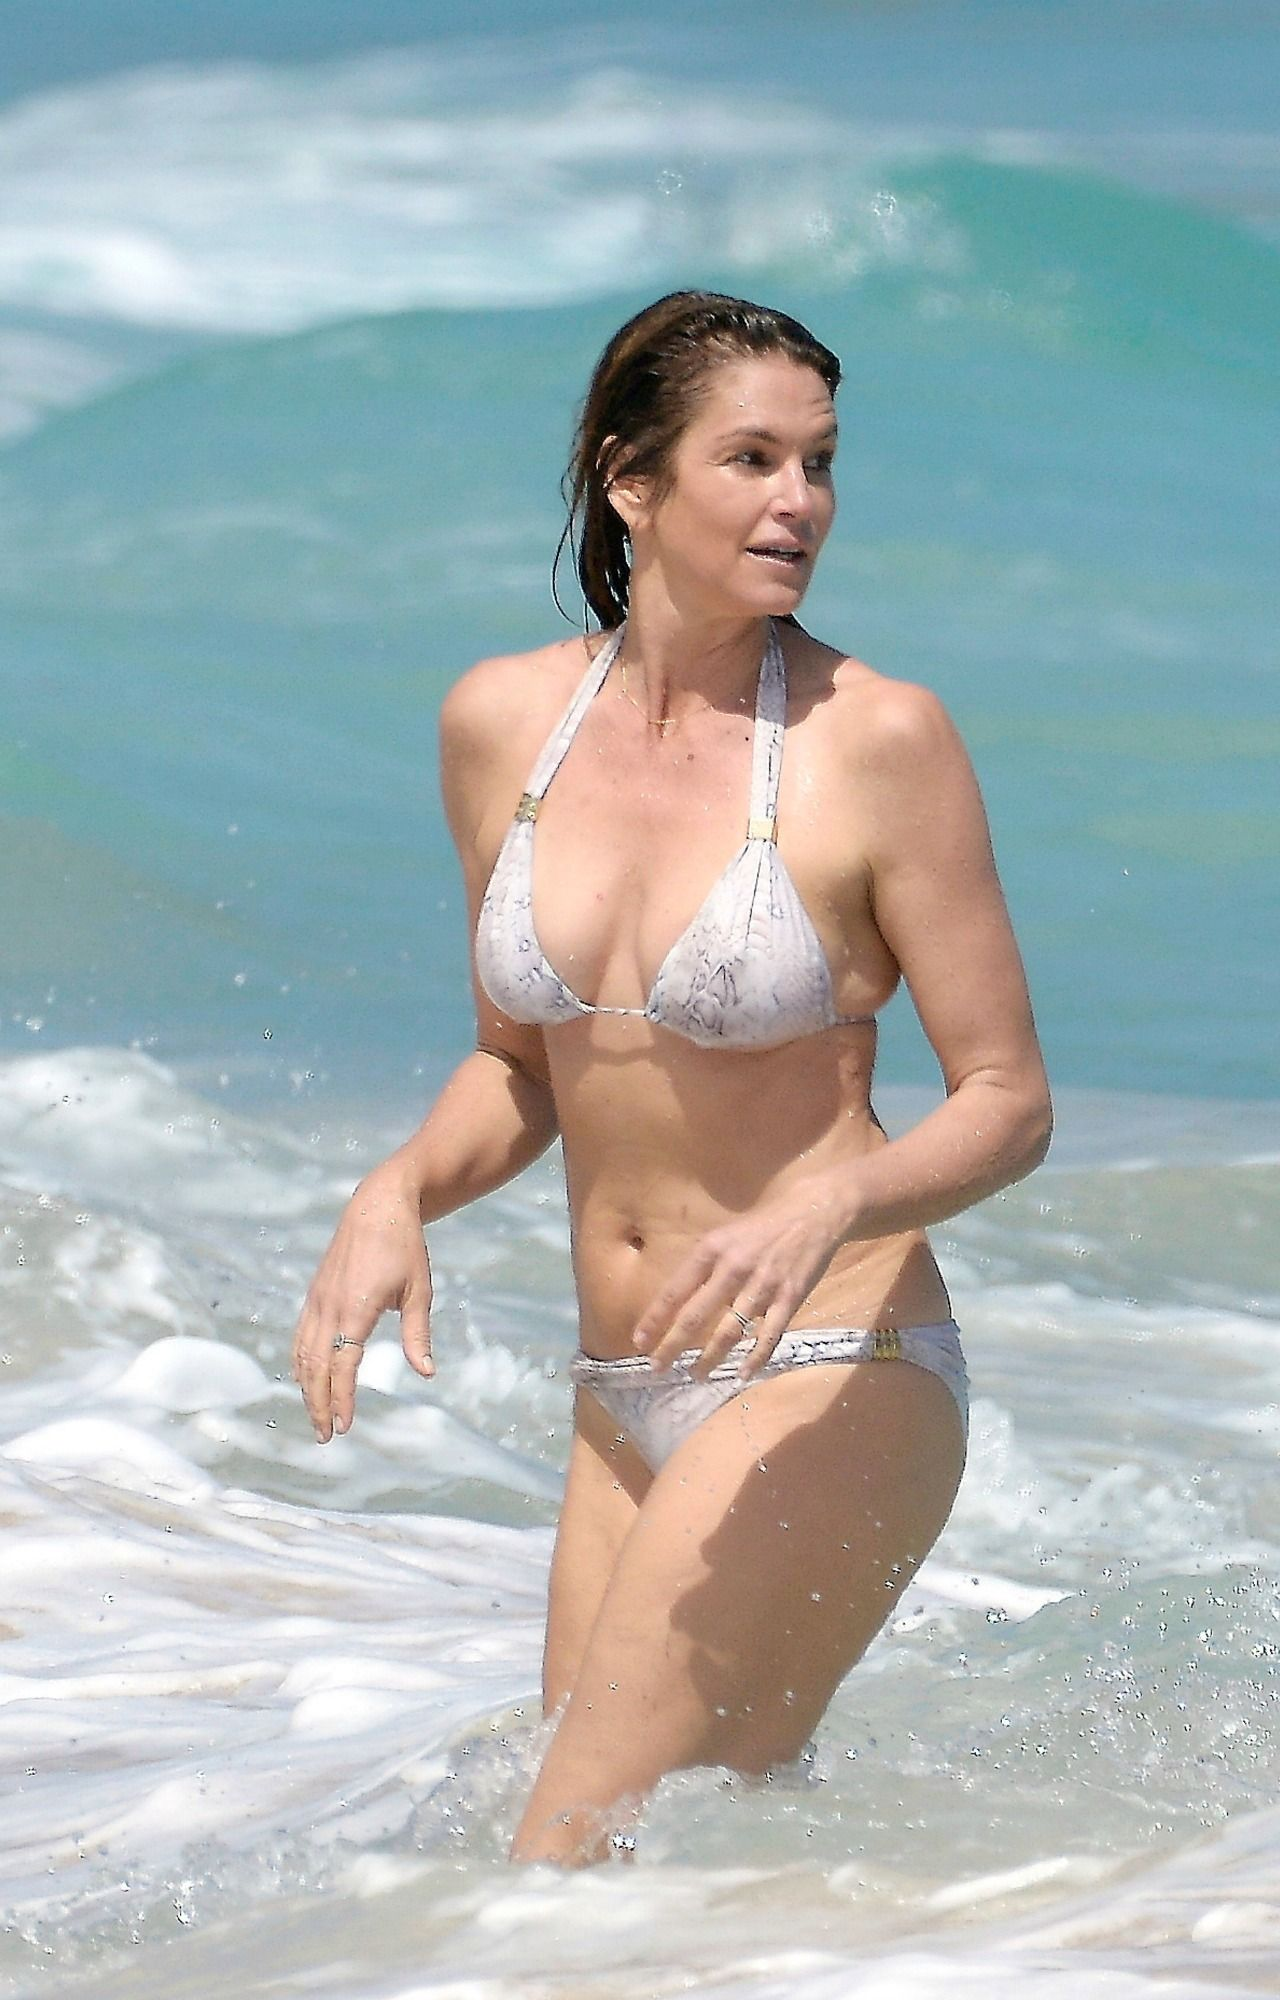 Venom reccomend Cindy crawford in bikini at the beach